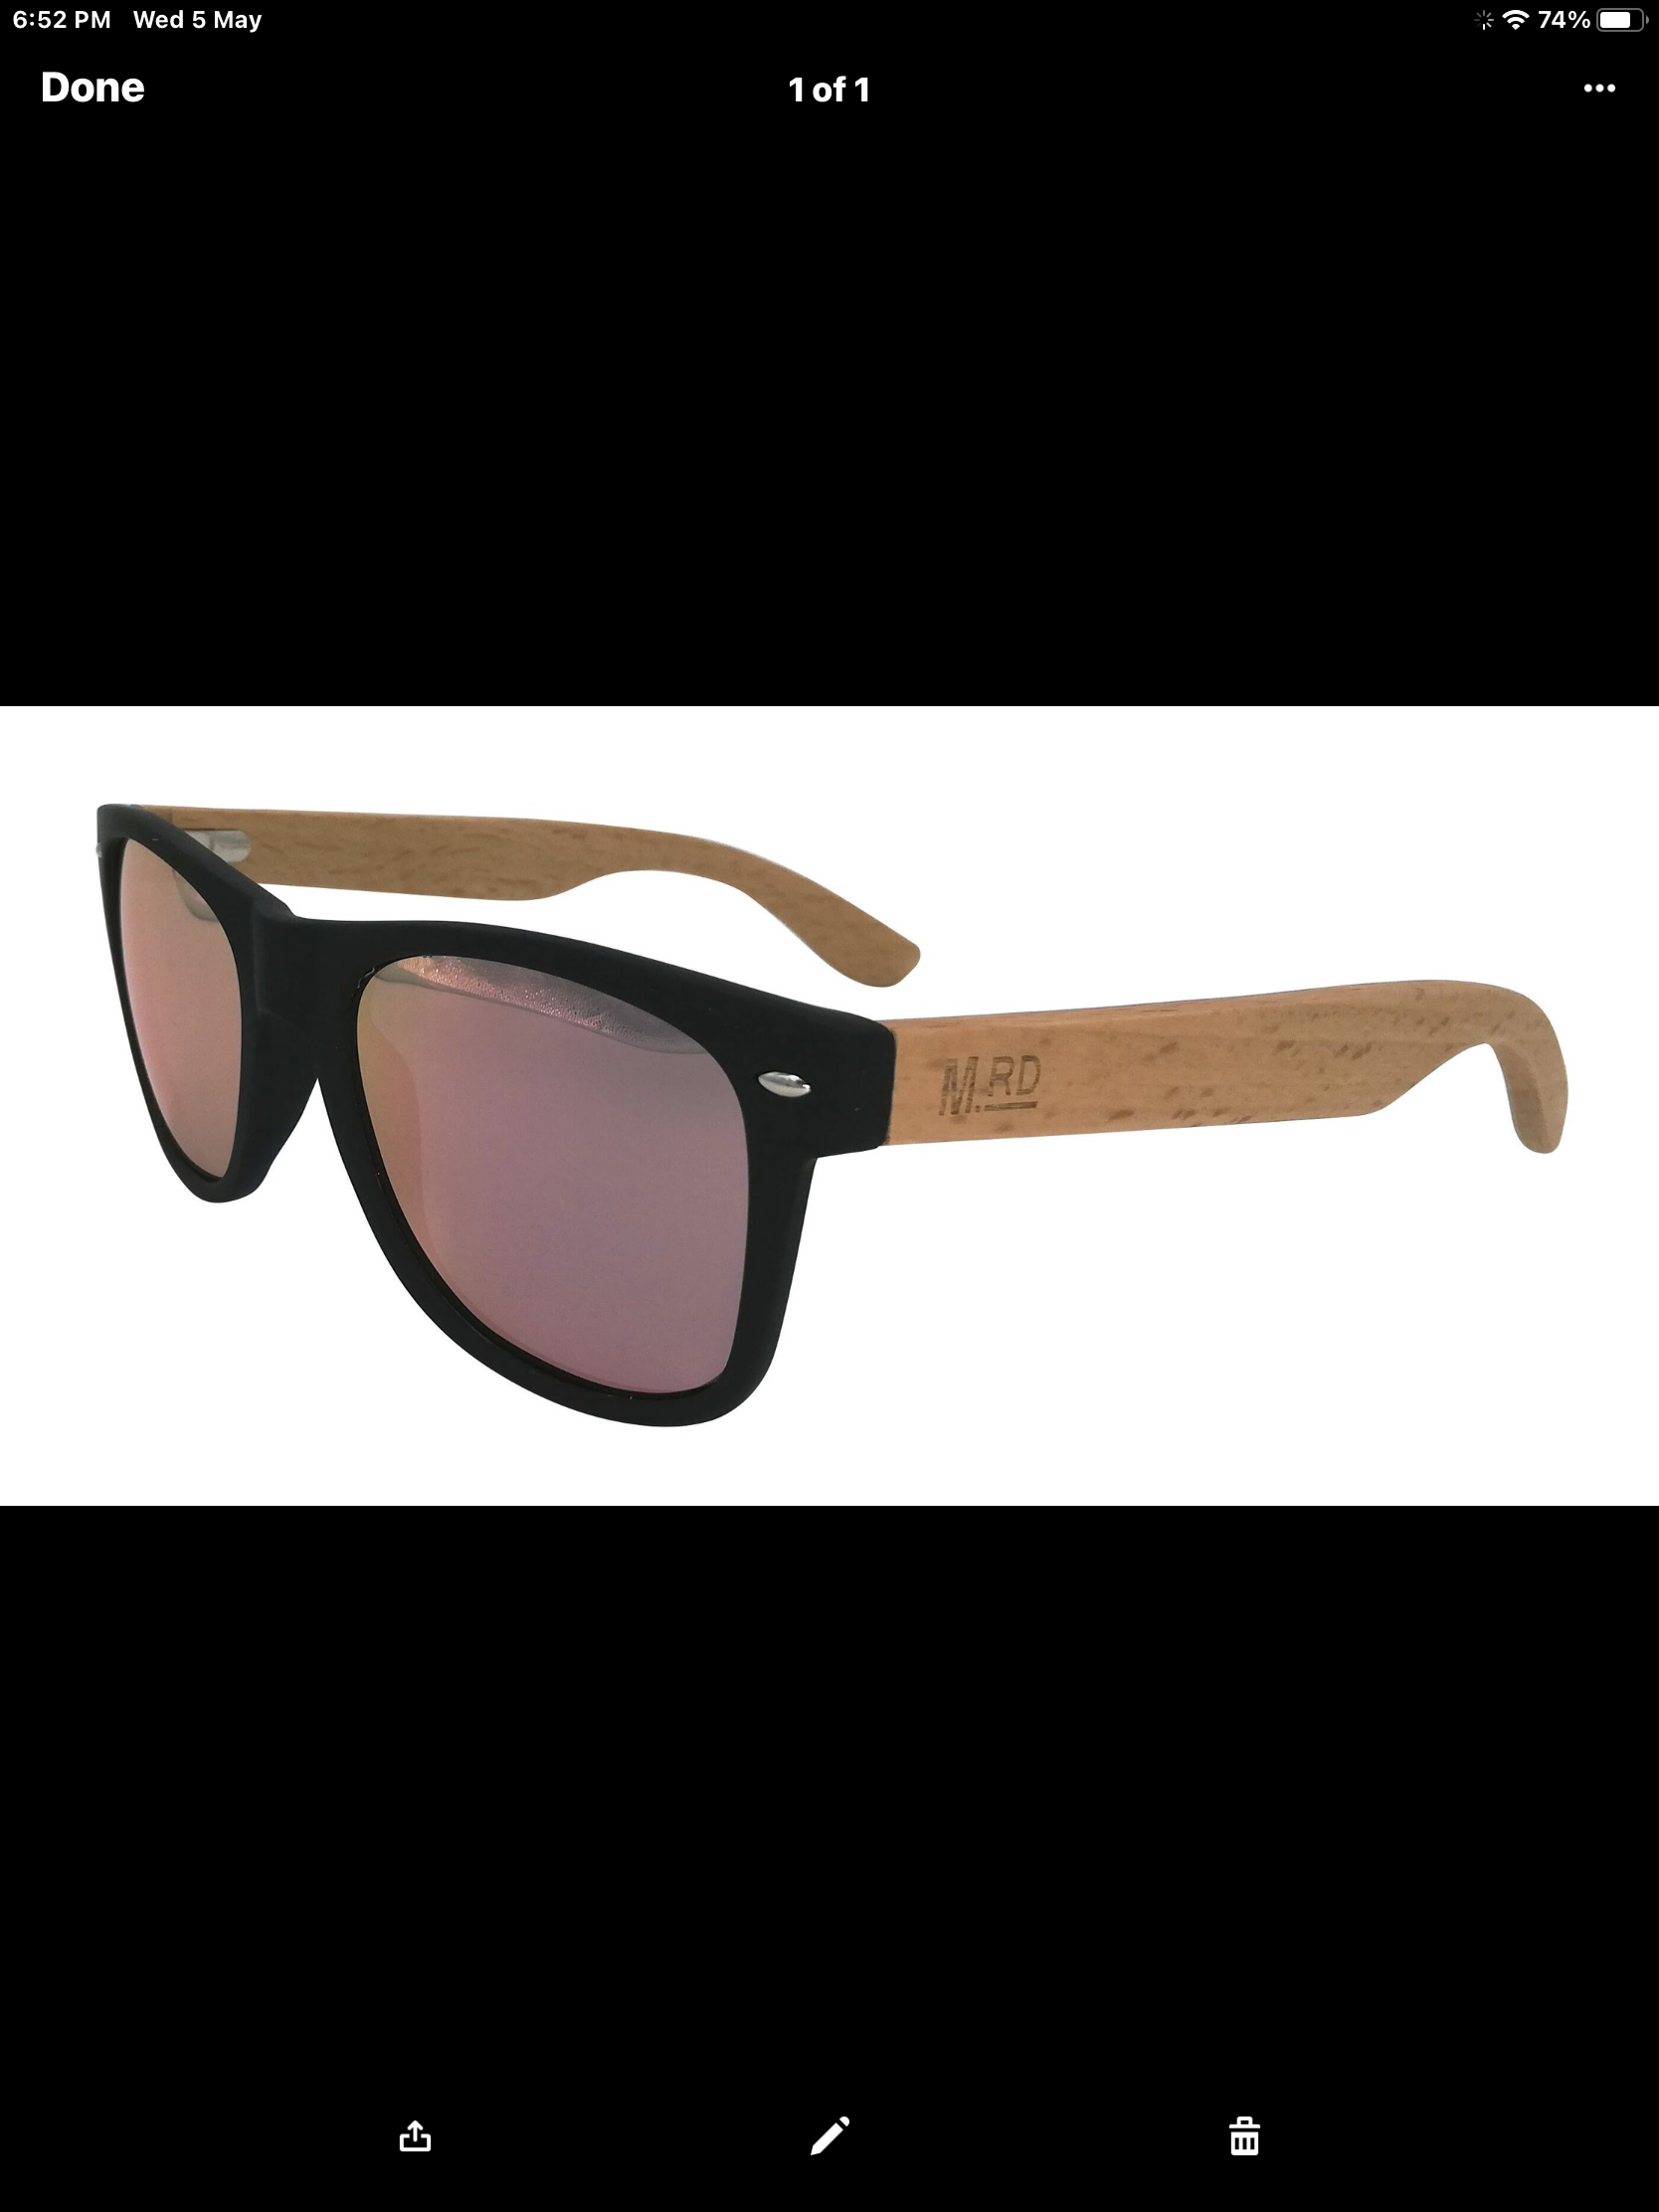 Moana Sunglasses 3003